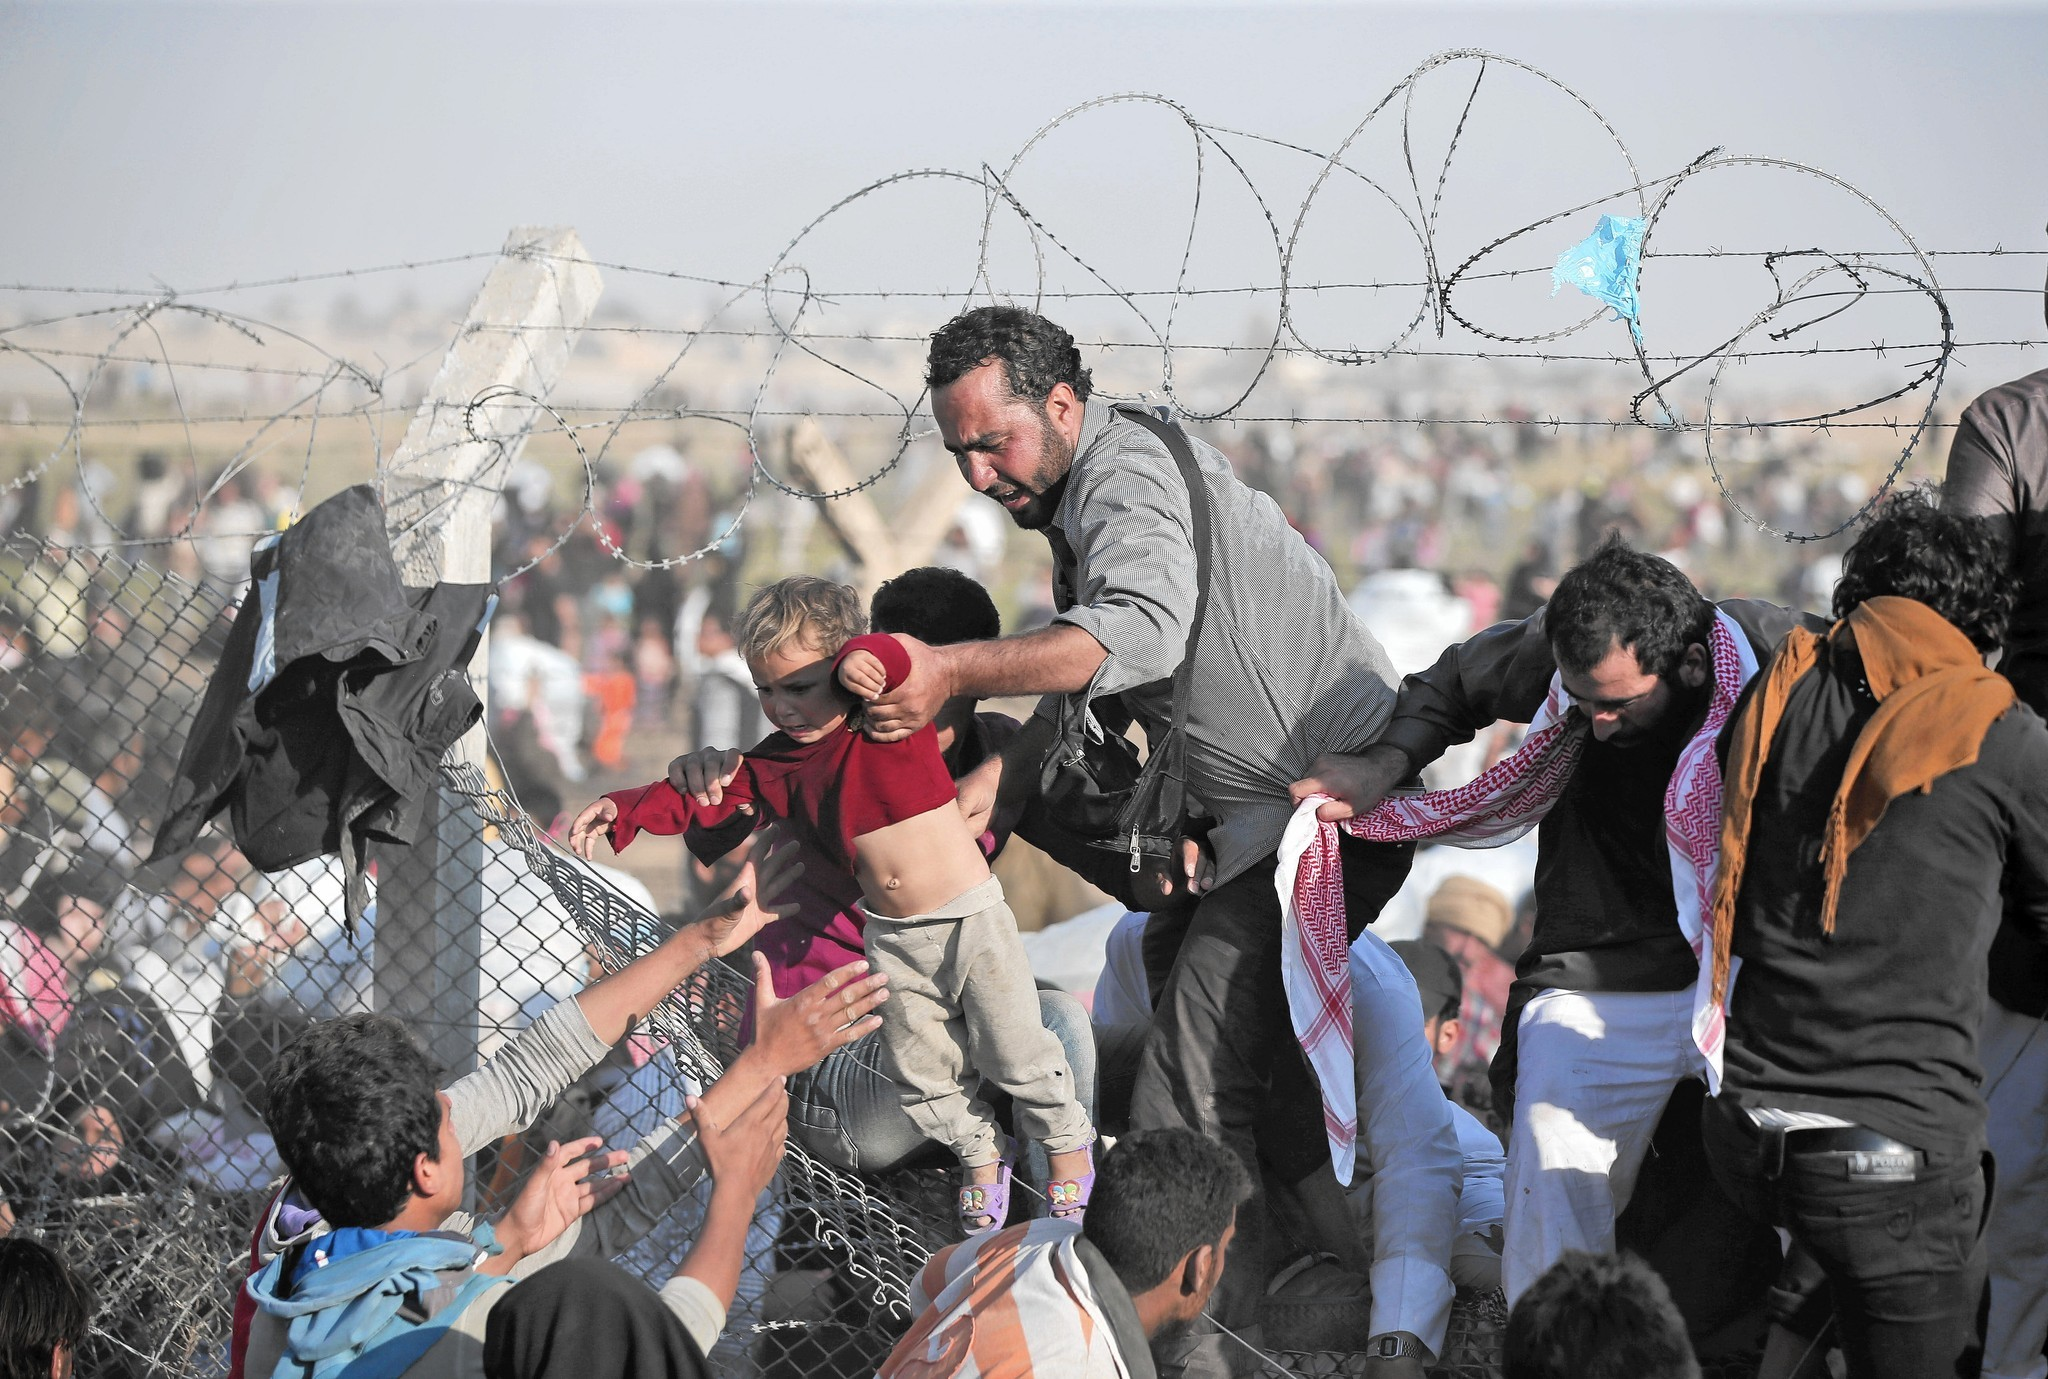 mc-pa-accept-syria-refugees-wolf-20151116.jpg